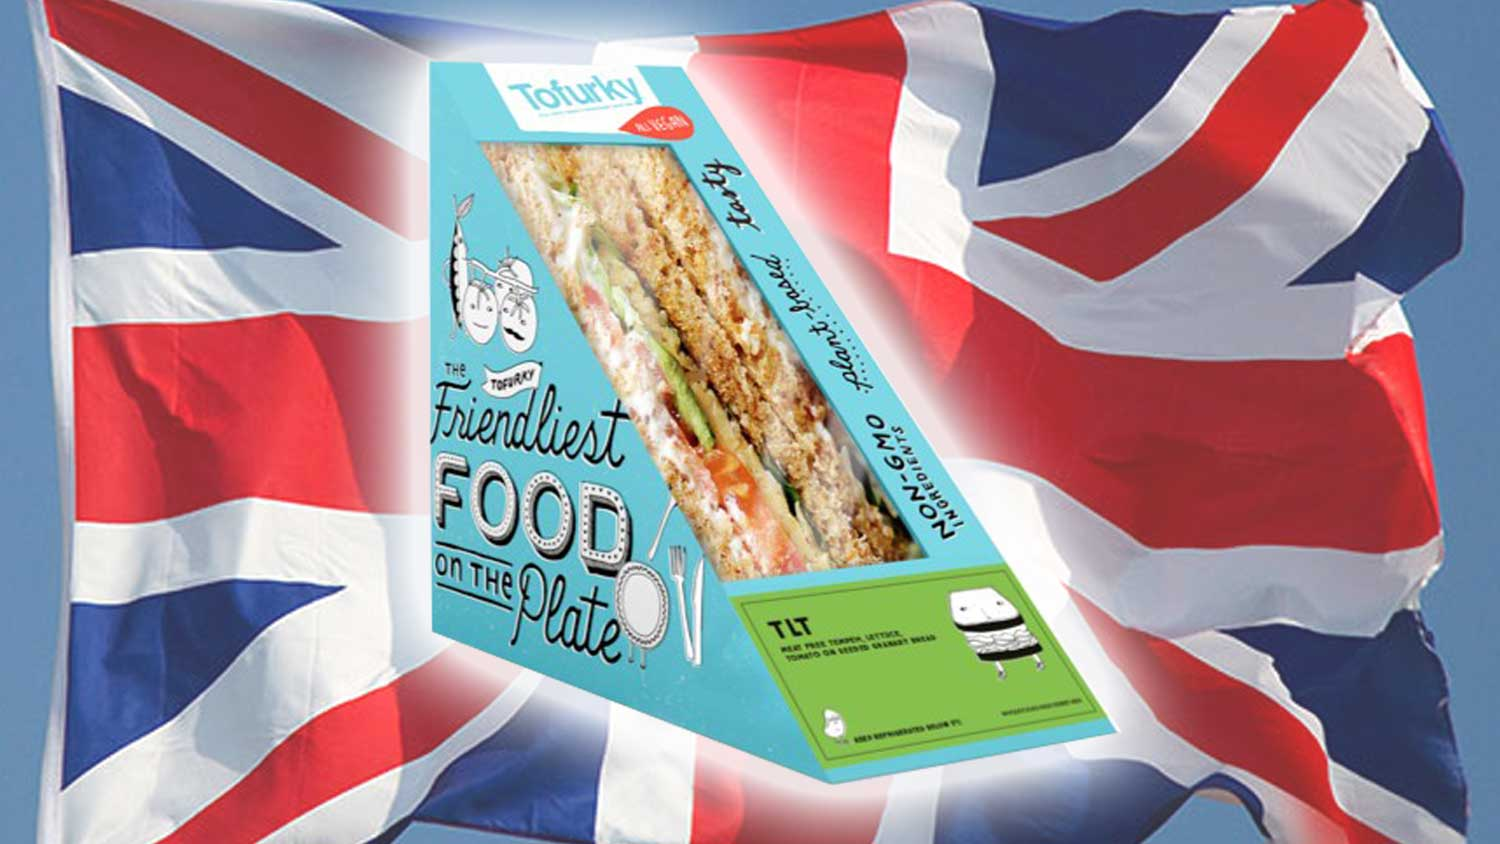 All the Places in the UK Selling Vegan Tofurky Sandwiches